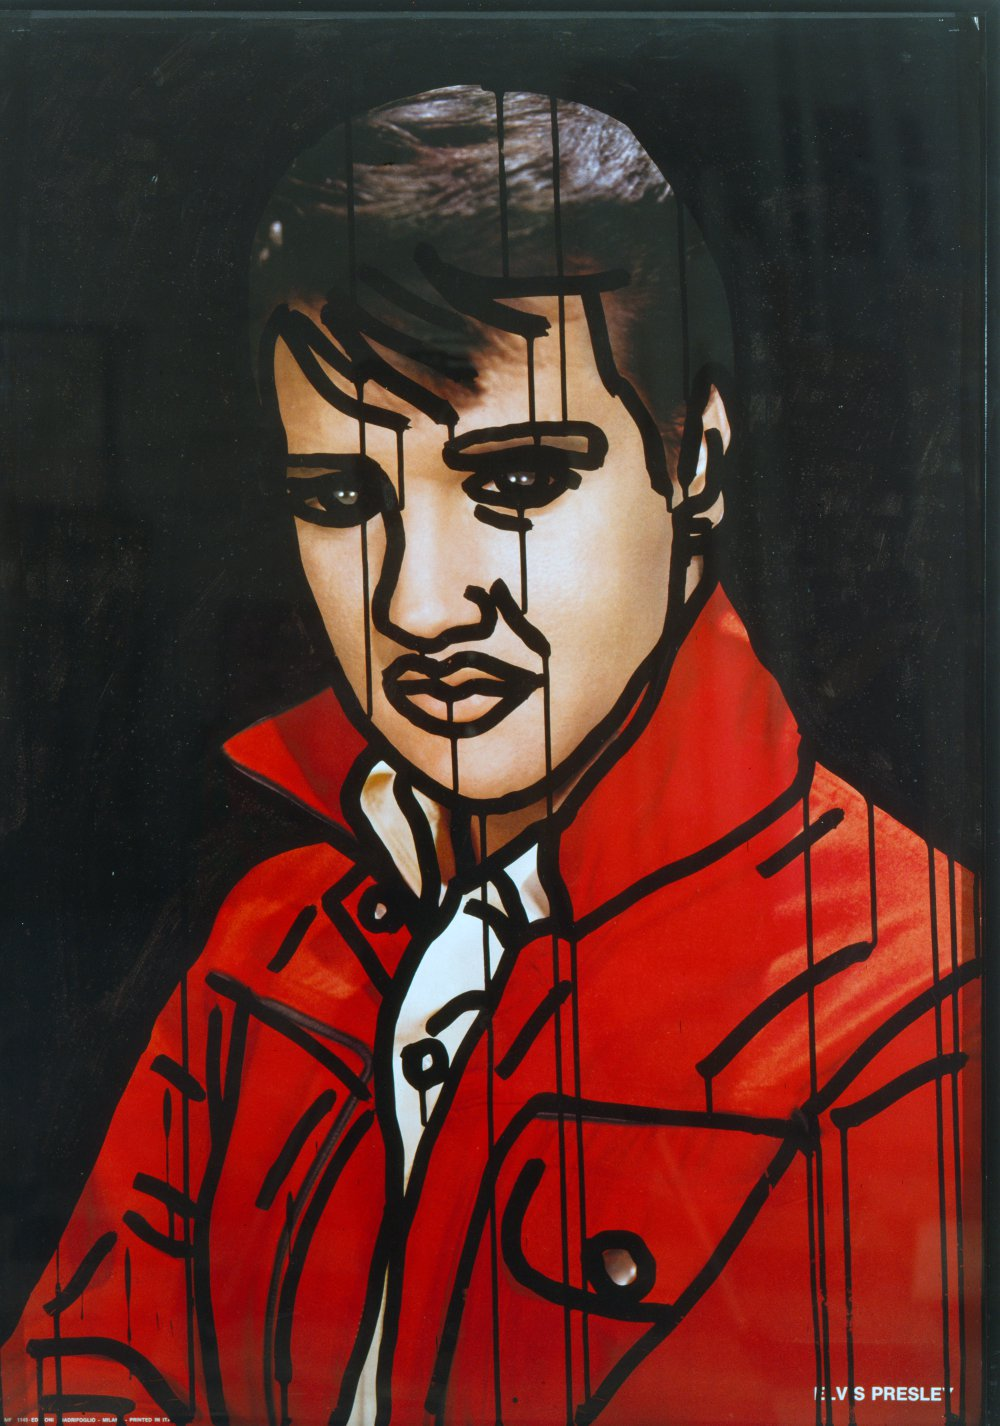 KEITH HARING Elvis Presley 1981 Ink on printed poster 92.7 x 73cm Image courtesy of Keith Haring Foundation